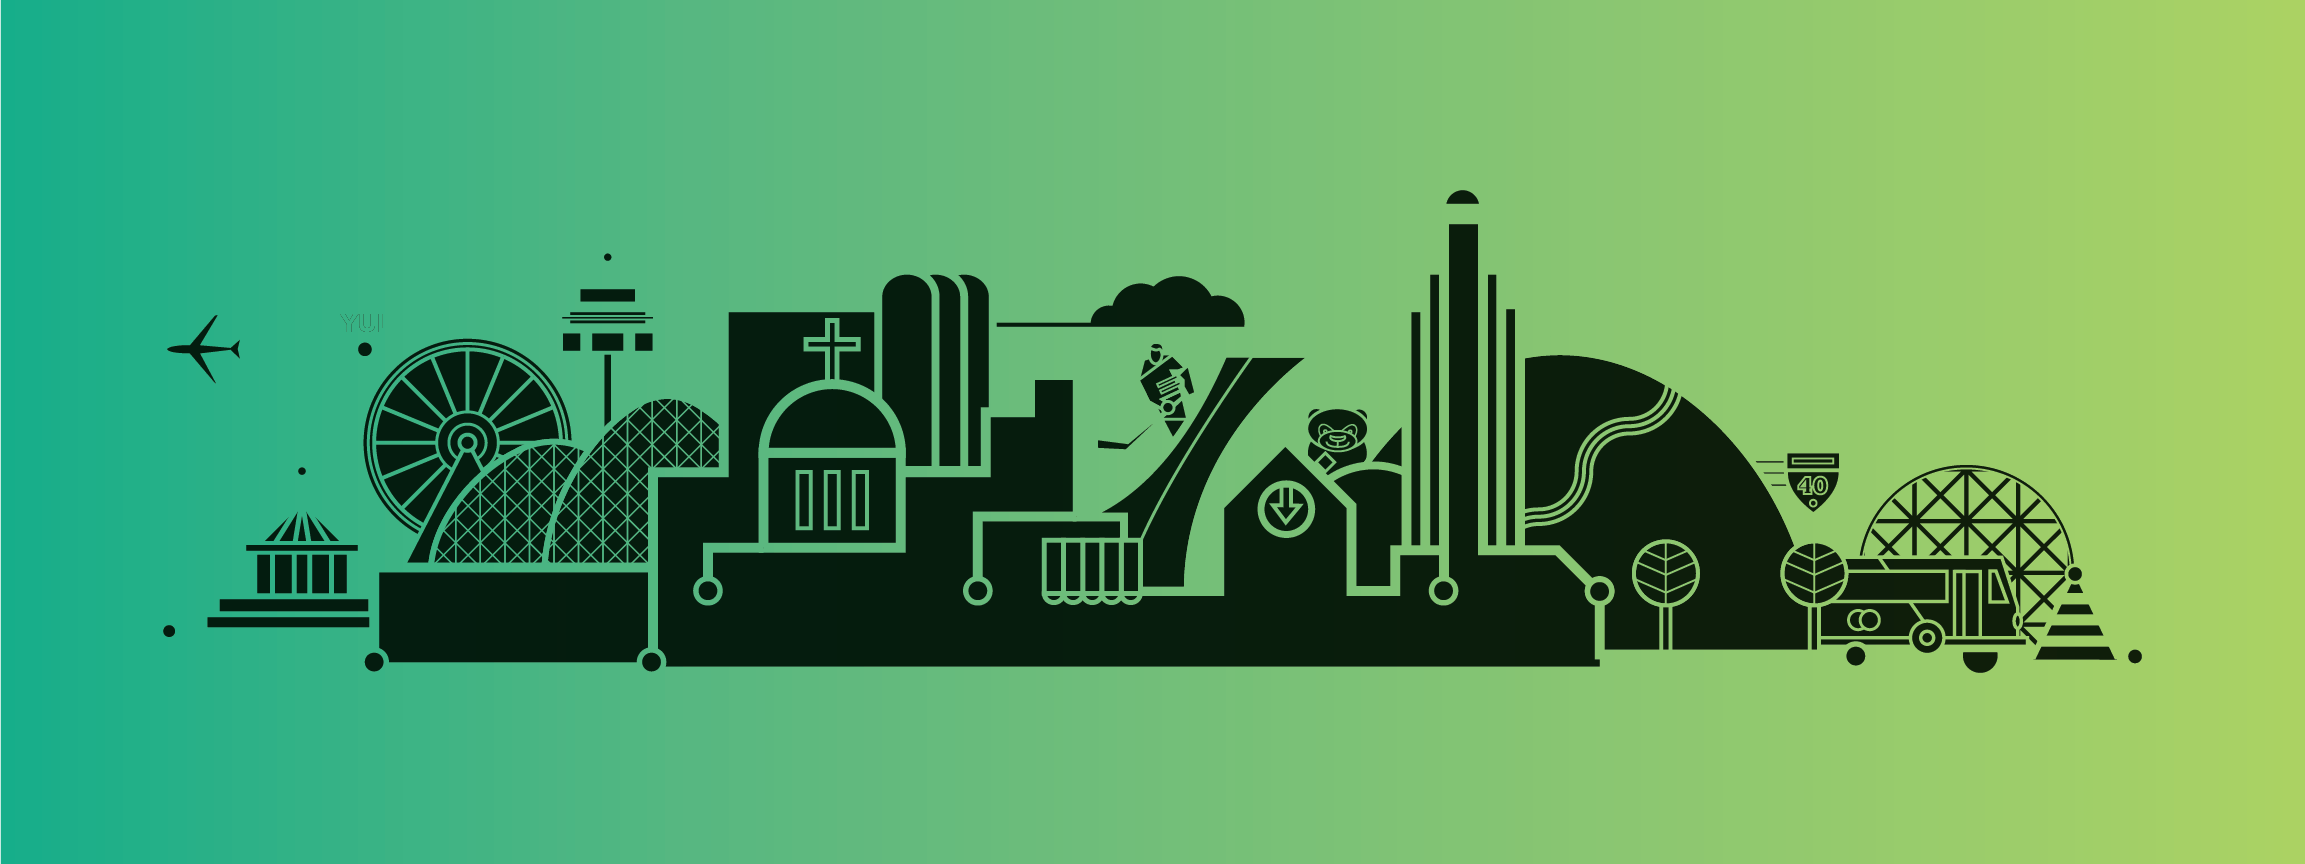 montreal-green-edition-illustration-by-loogart